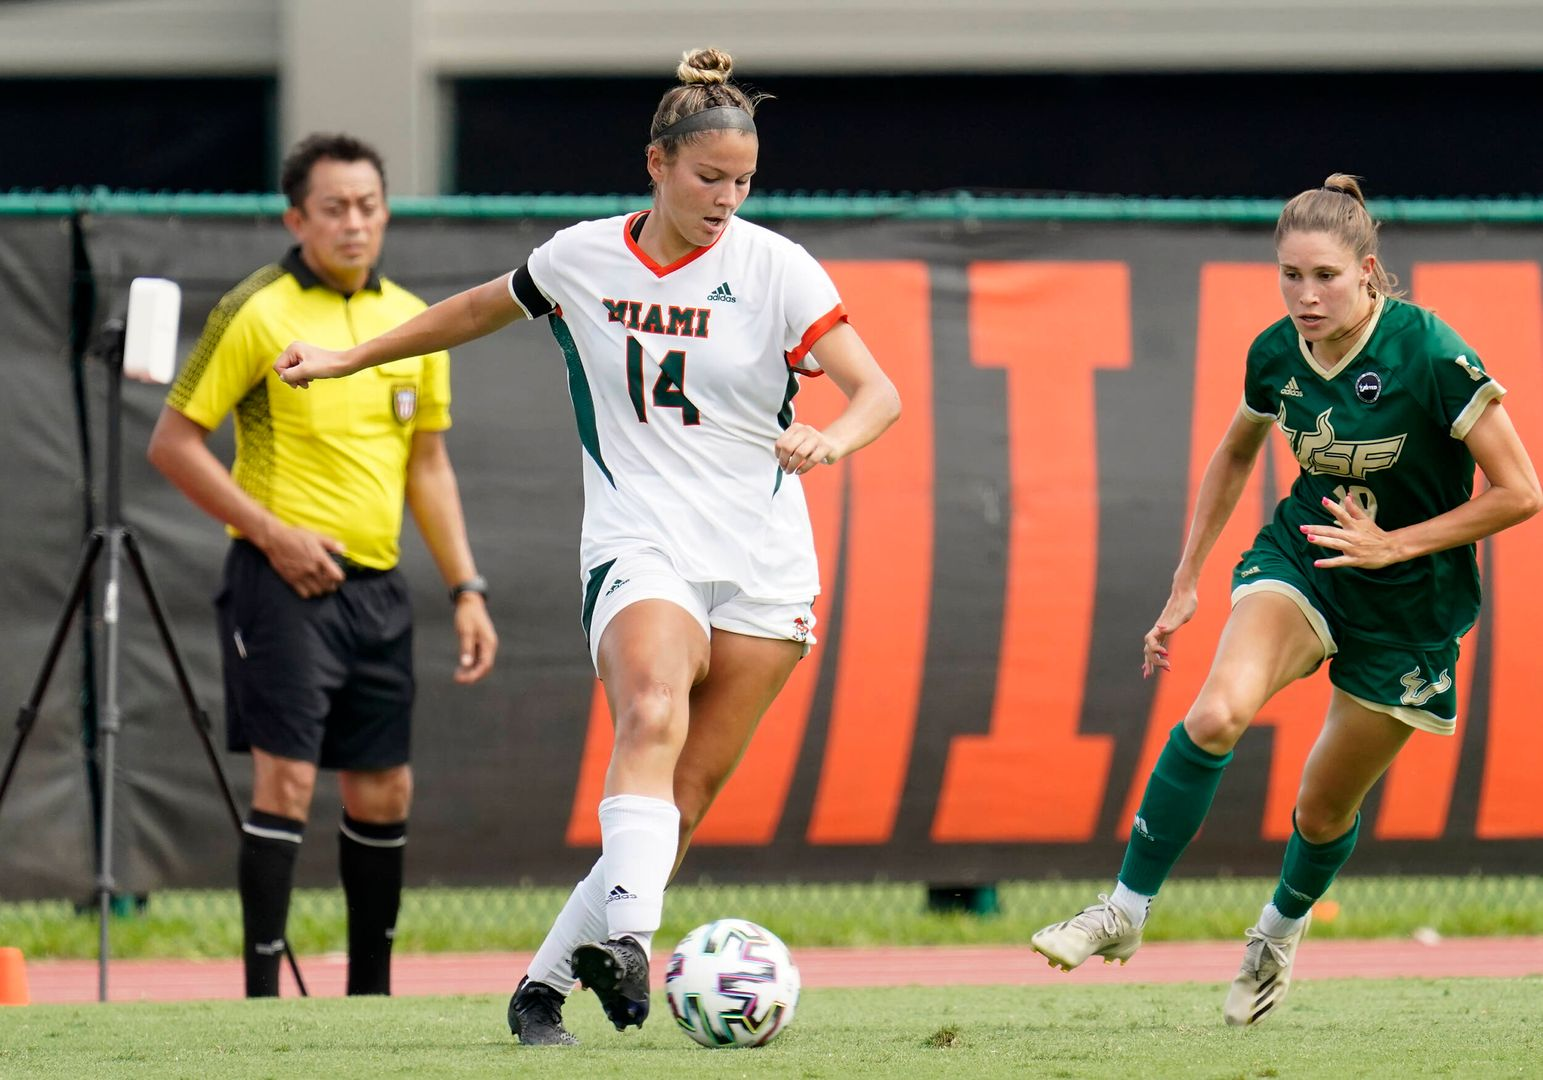 Canes Primed for ACC Play